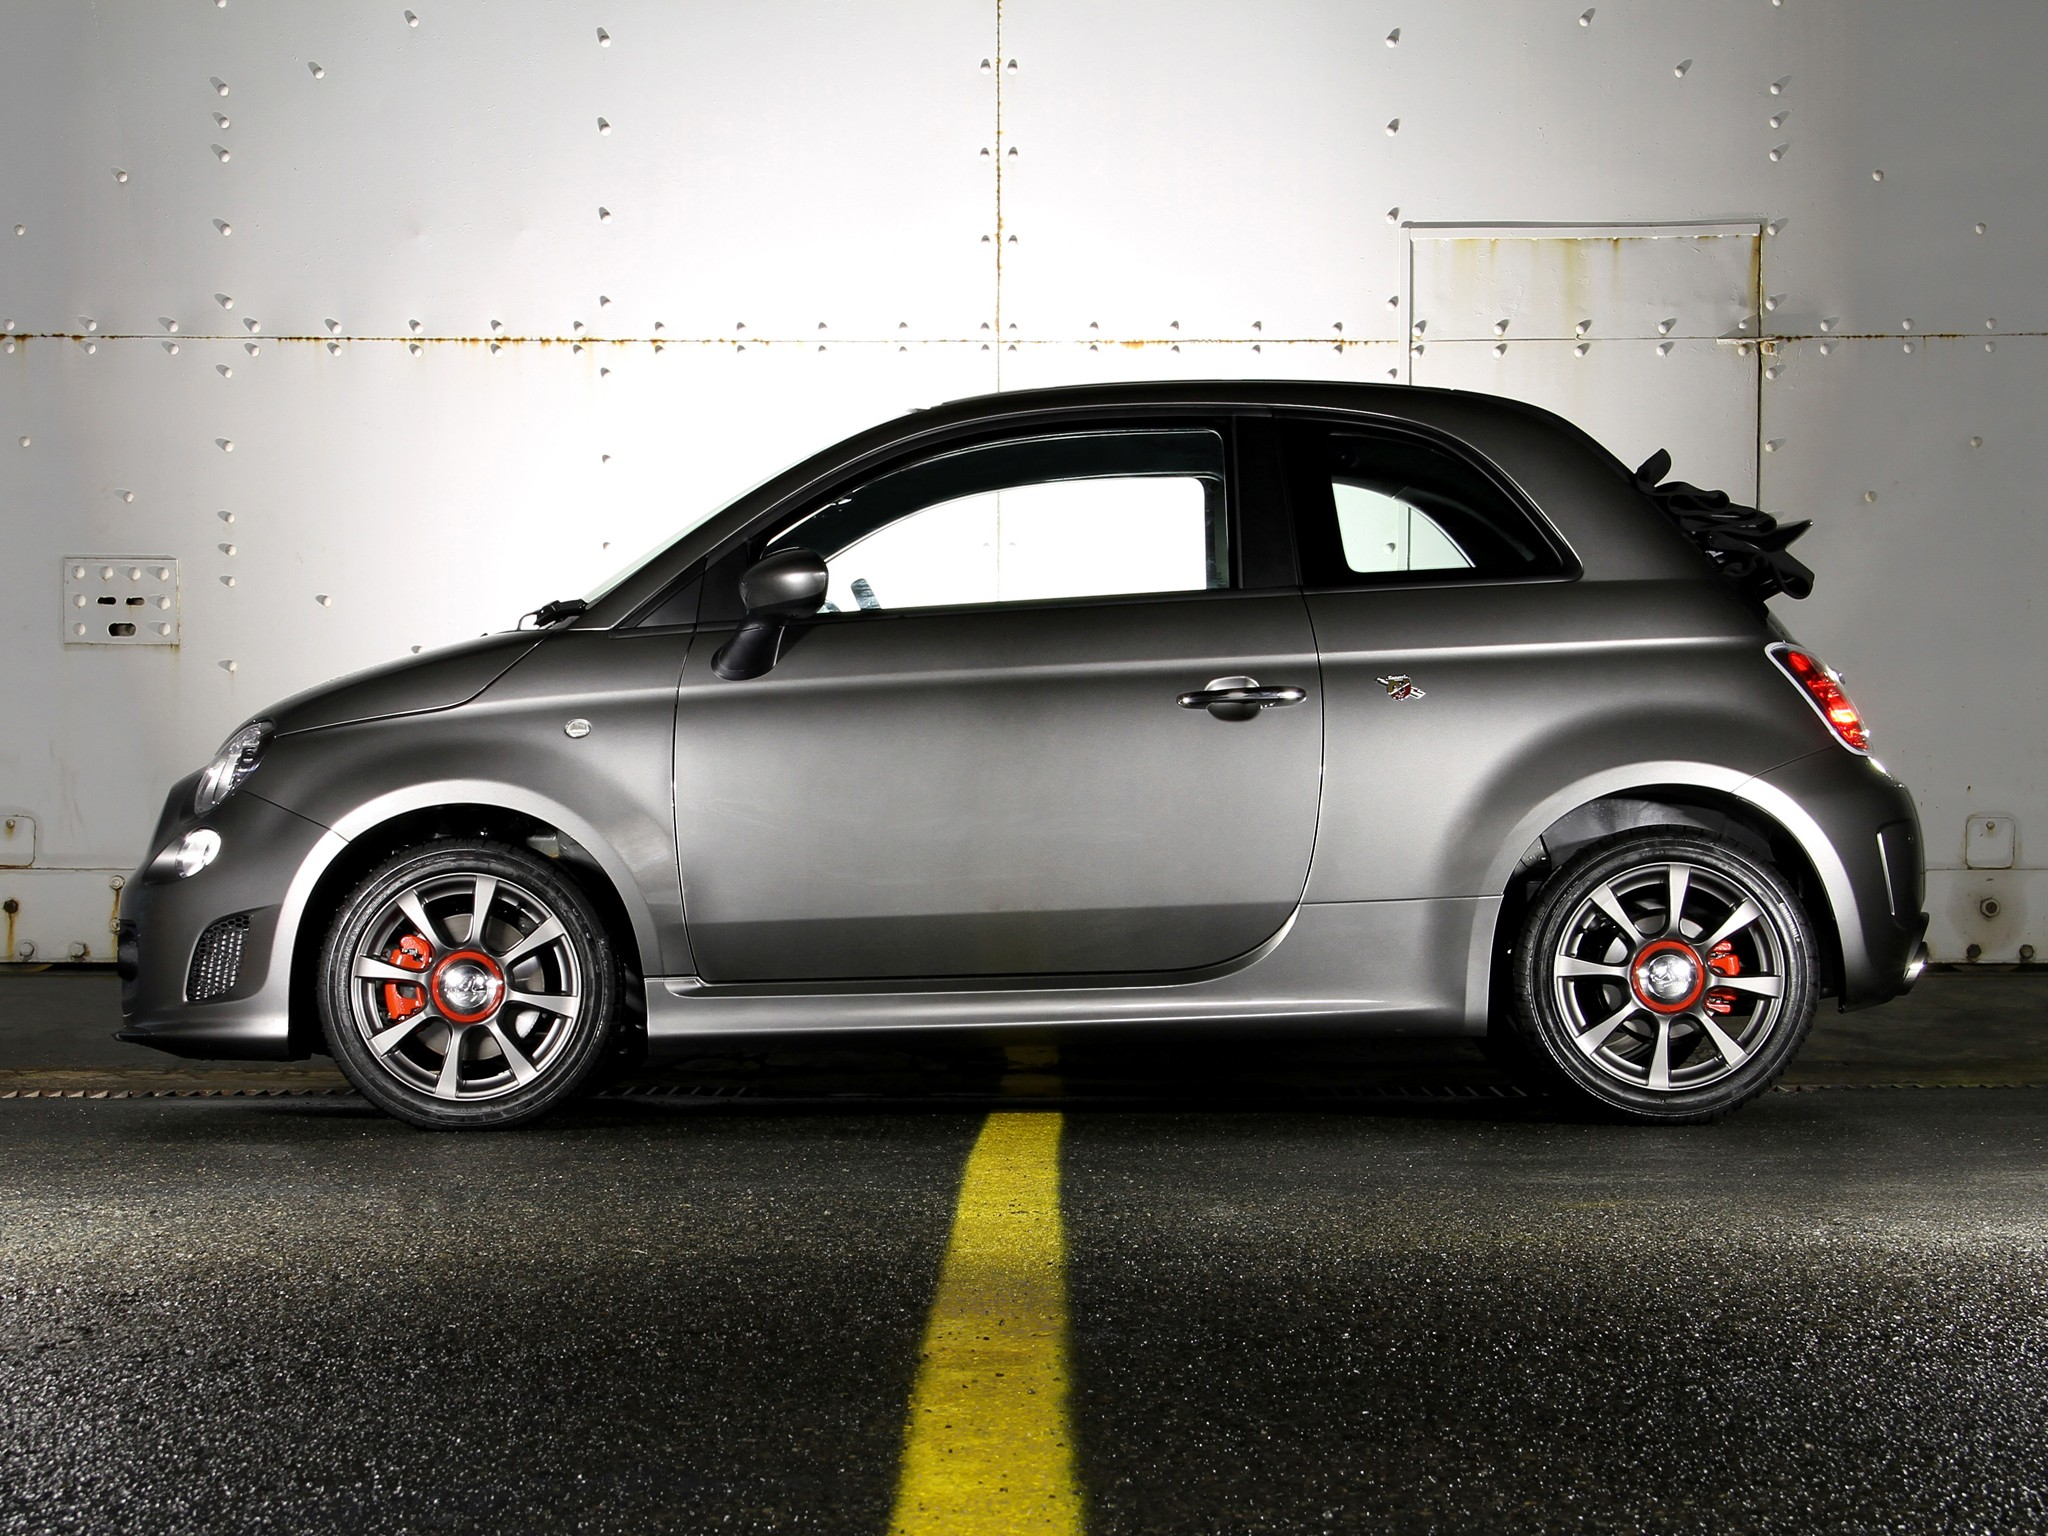 fiat 500c abarth specs 2012 2013 2014 2015 2016 2017 2018 autoevolution. Black Bedroom Furniture Sets. Home Design Ideas